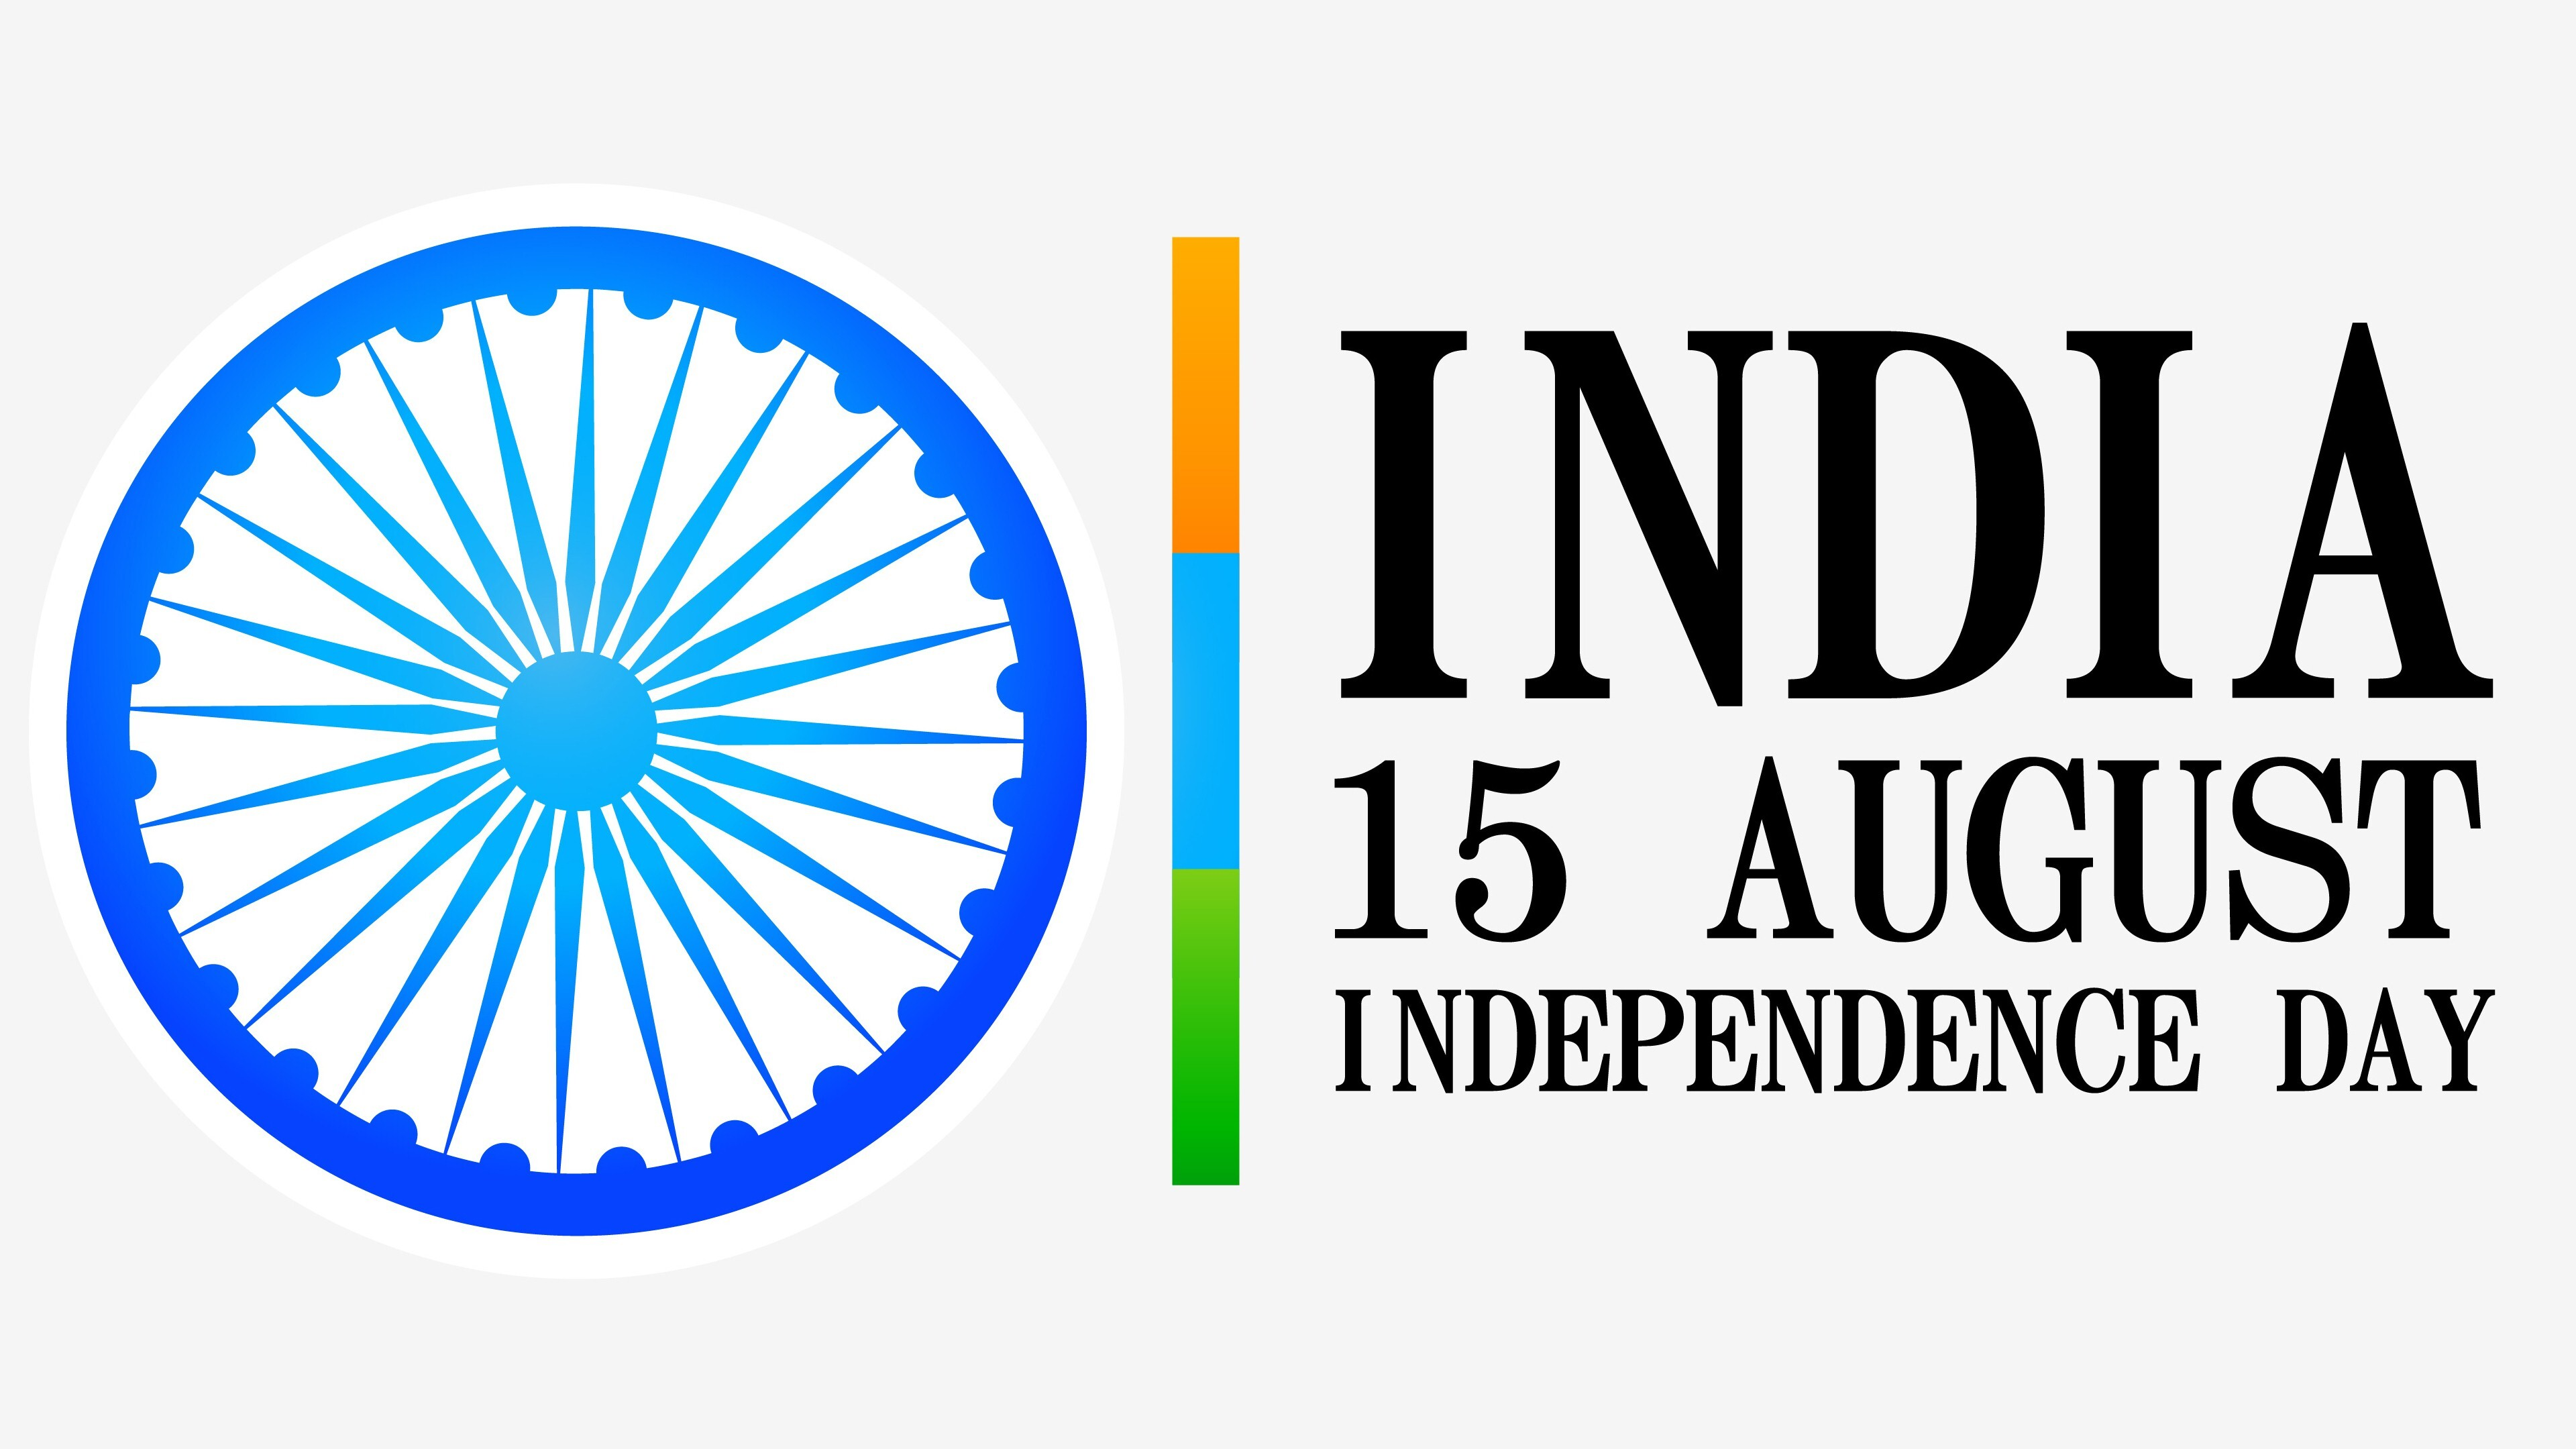 India Independence Day 2019 4K Wallpaper | HD Wallpapers